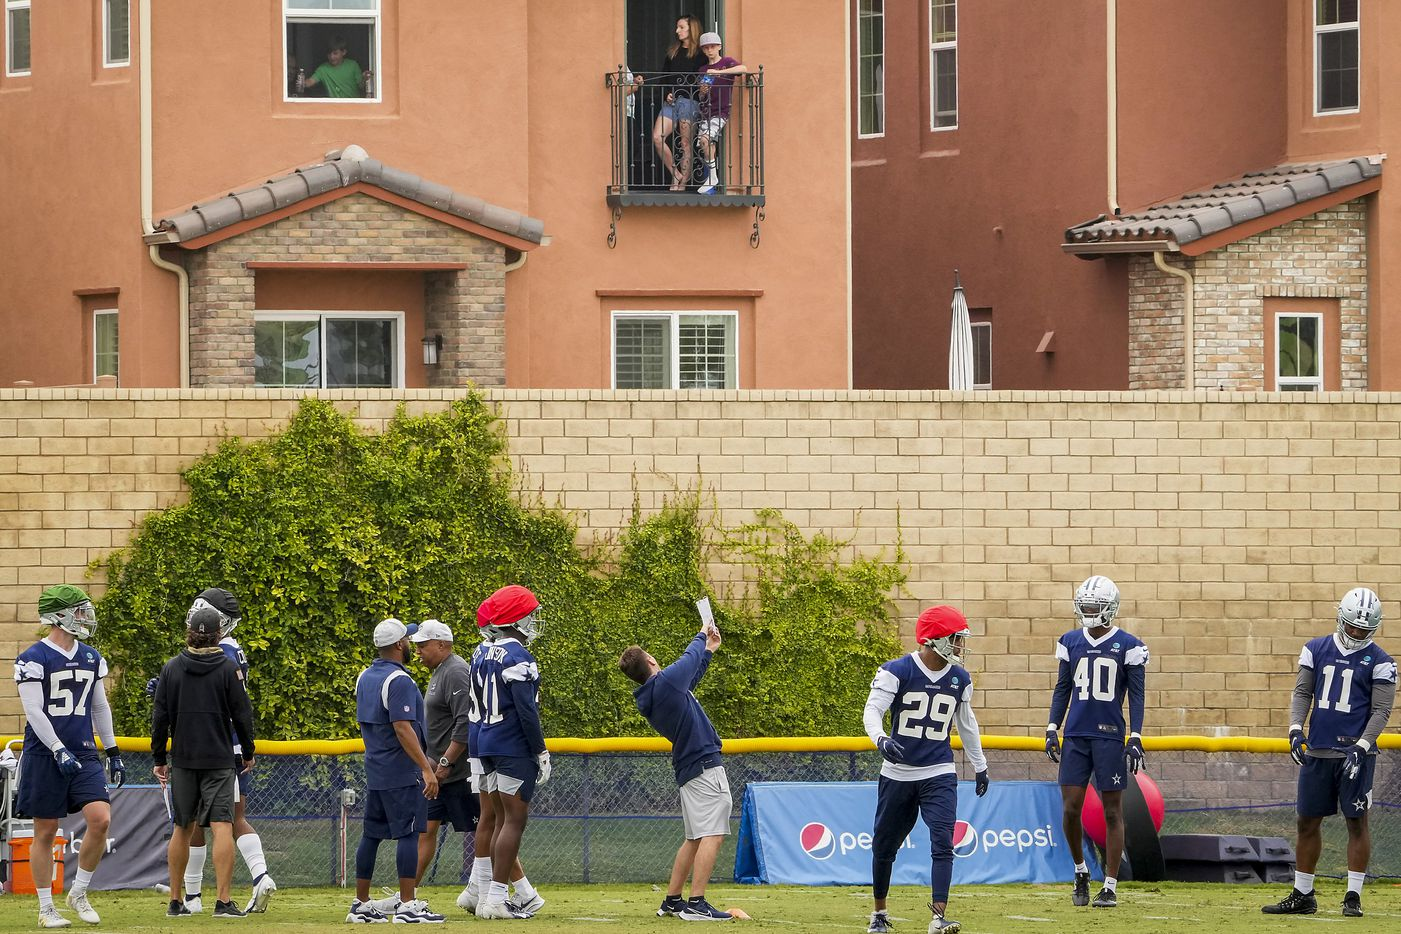 People watch from the balcony of a home adjacent to the complex during a Dallas Cowboys practice at training camp on Saturday, July 24, 2021, in Oxnard, Calif.